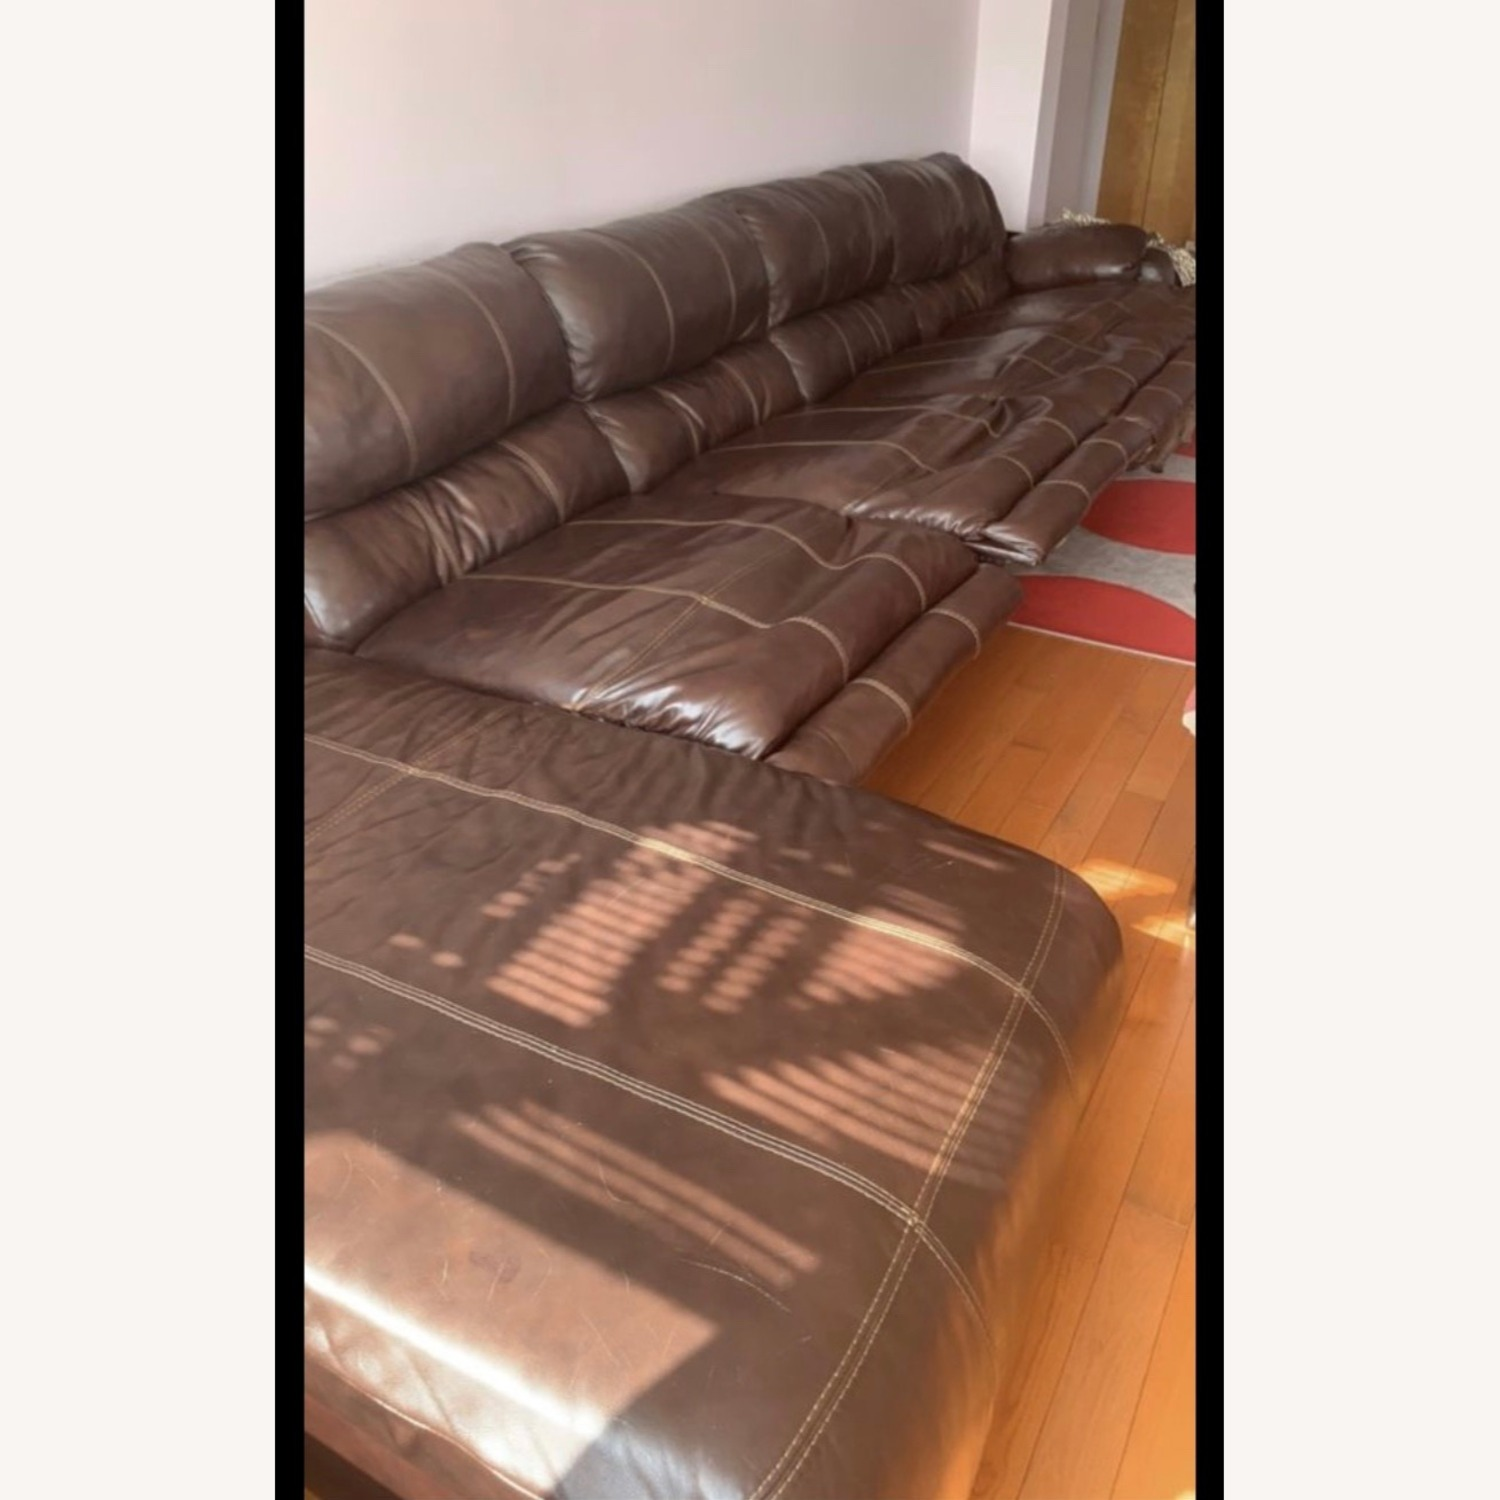 Ashley Furniture Huge Couch with 4 Recliners - image-5